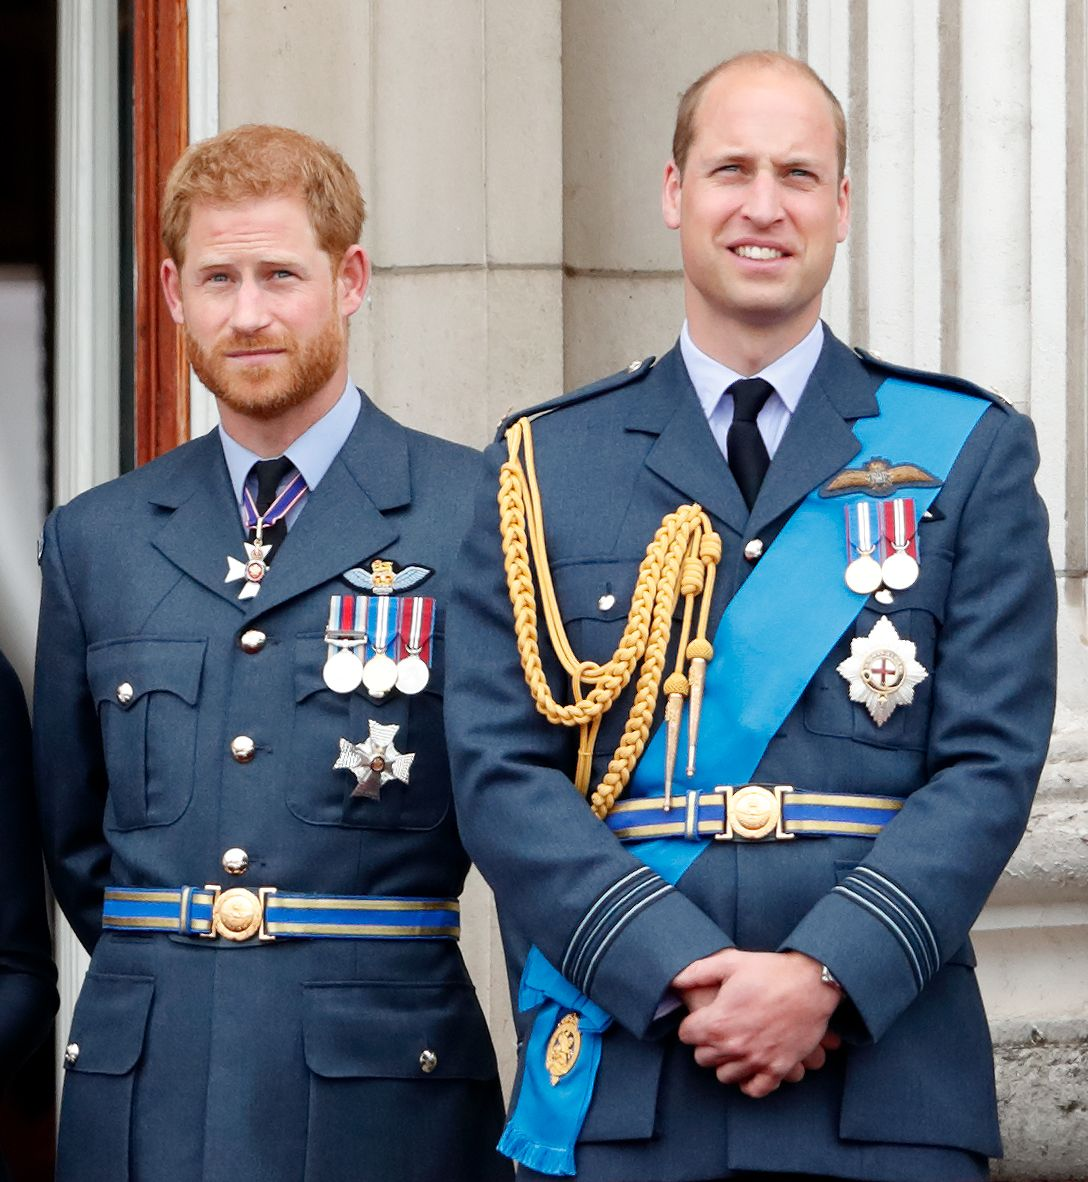 """Prince Harry Was Treated as a """"Spare"""" by the Royal Family, Biographer Claims"""